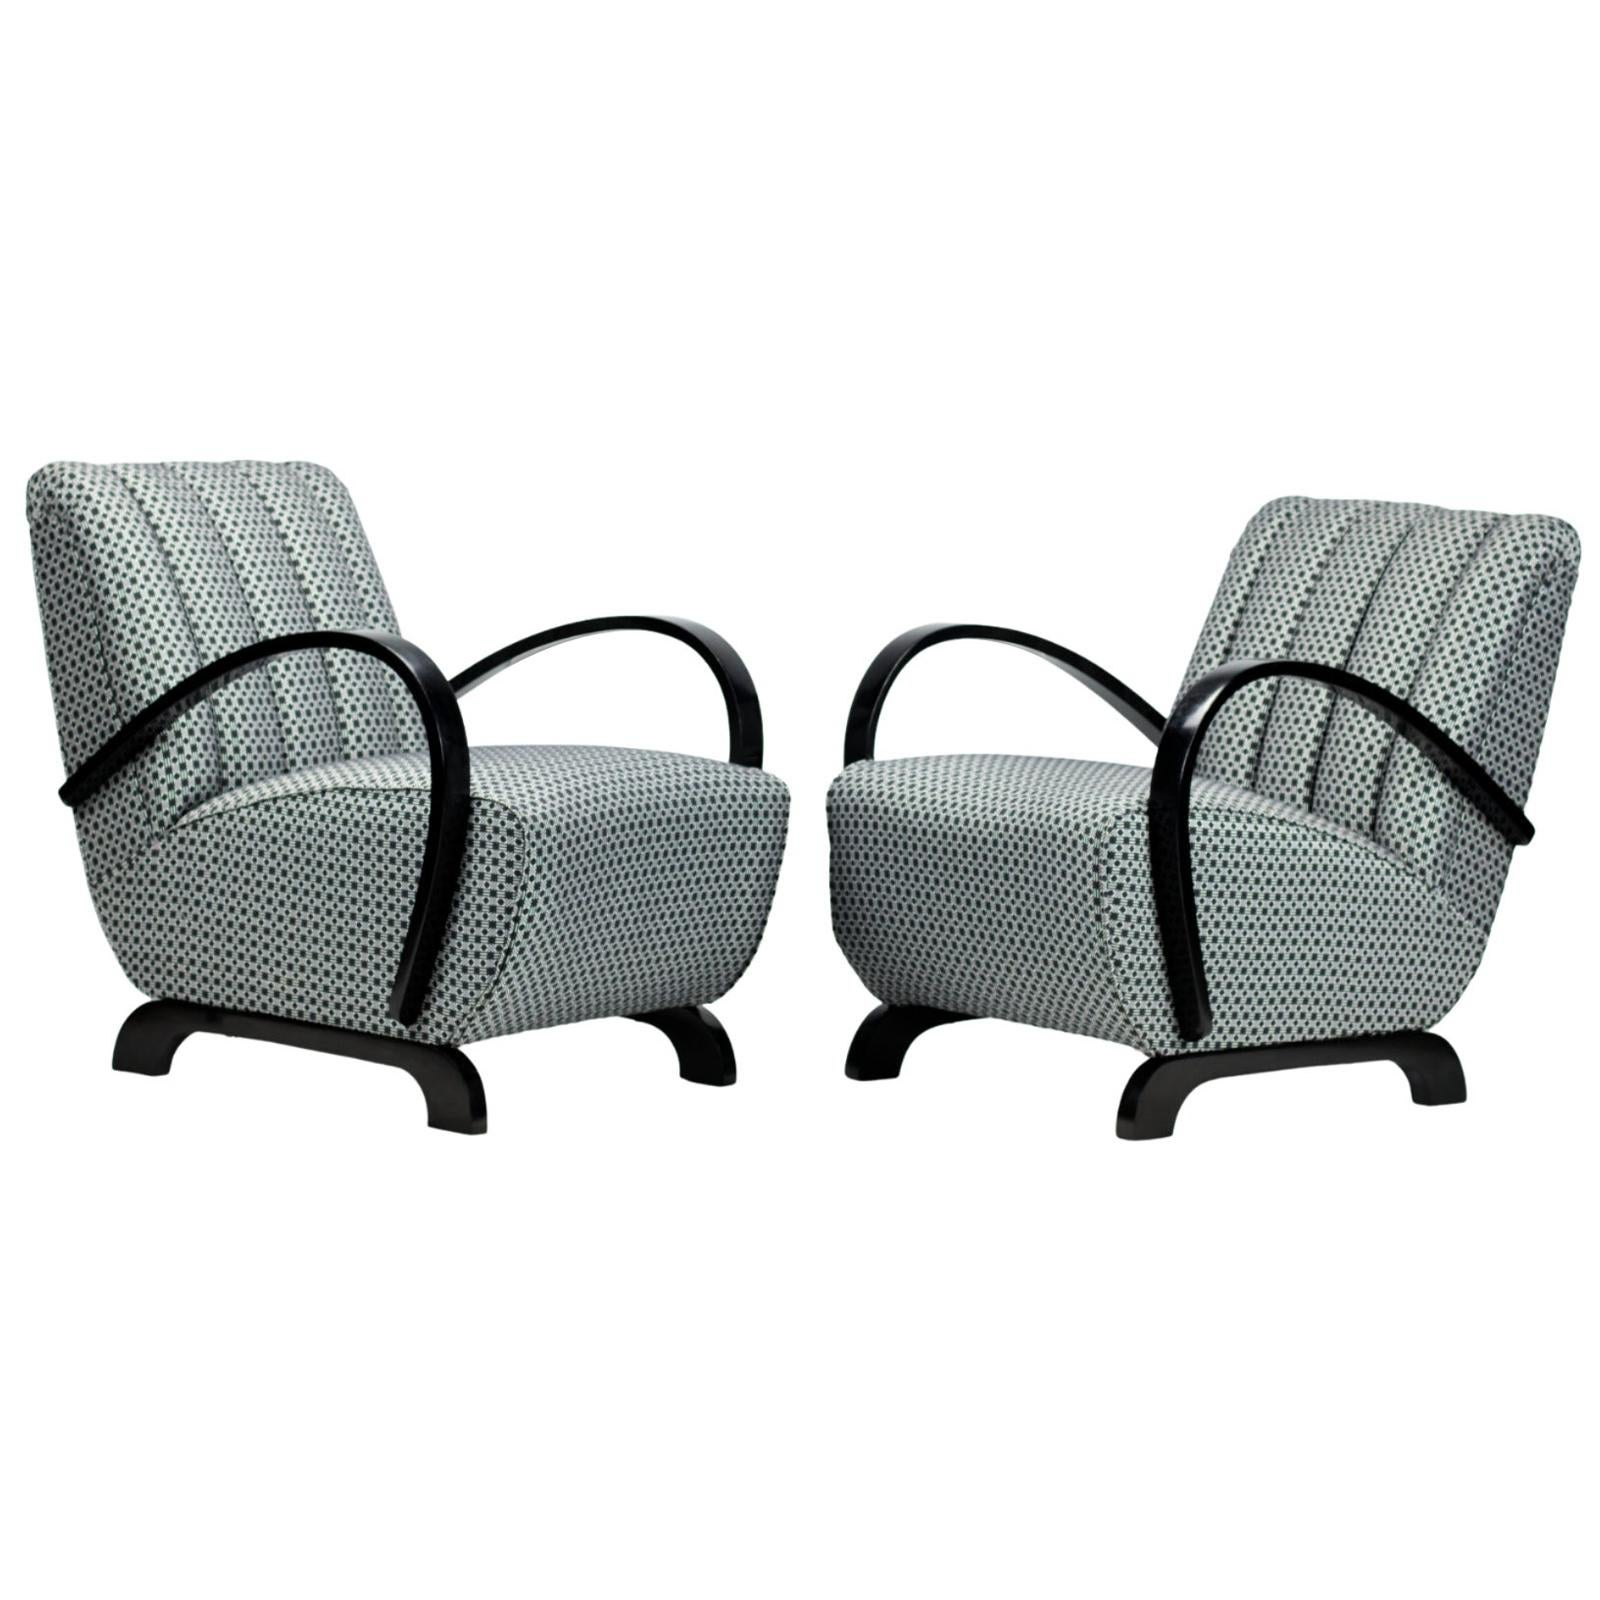 Pair of Art Deco Lounge Chairs by Jindrich Halabala for UP Zavody Brno, 1930s